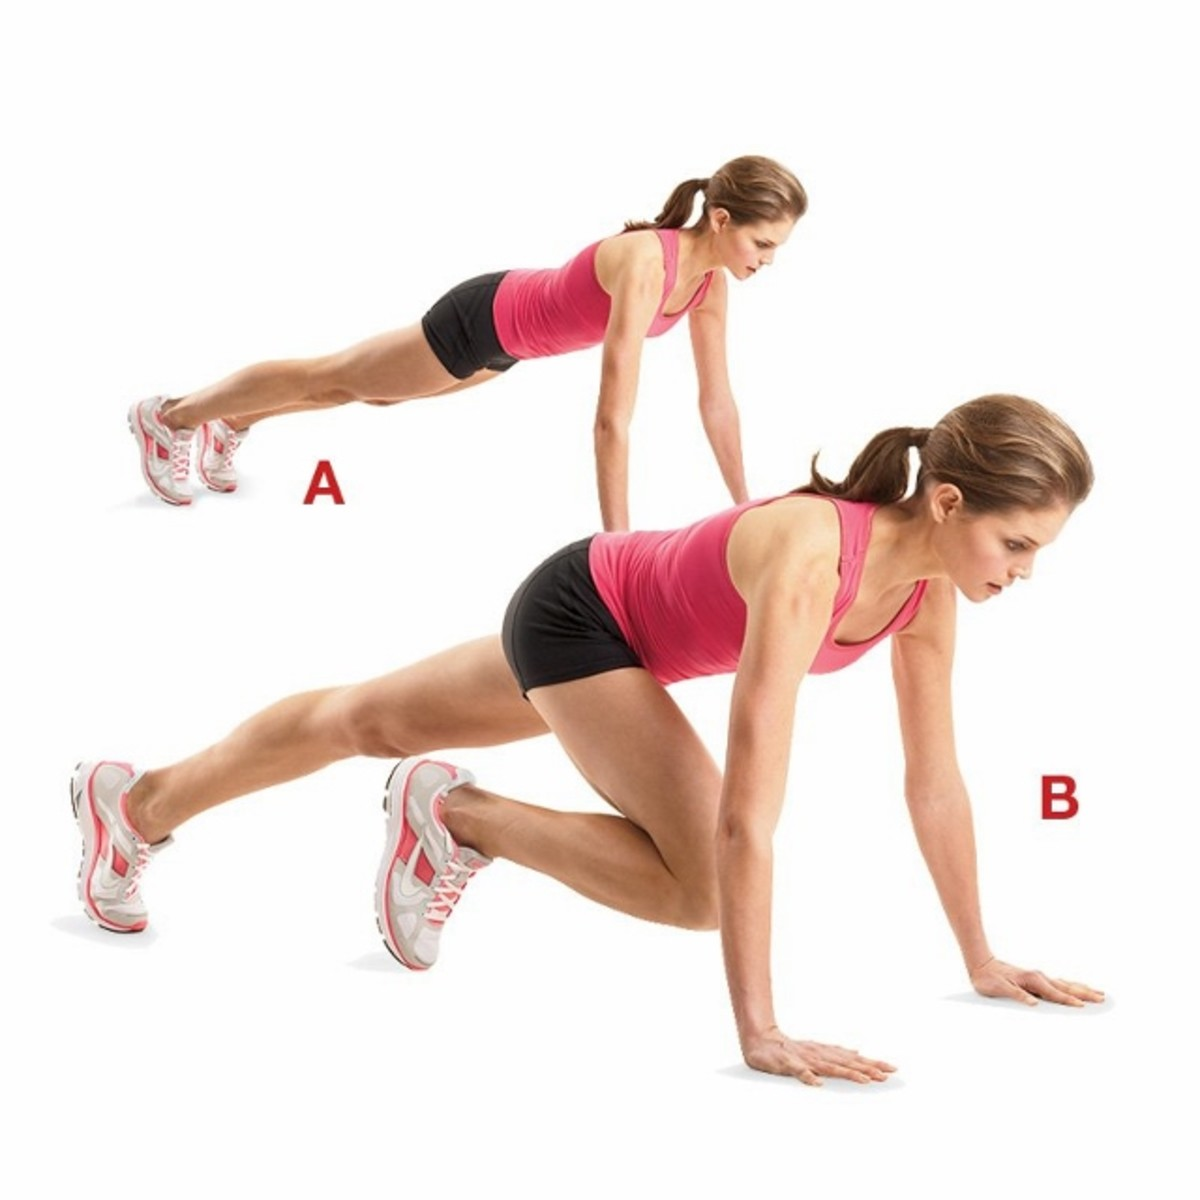 Slow Motion Mountain Climber: A core exercise designed to improve stability while transferring power from leg-to-leg.